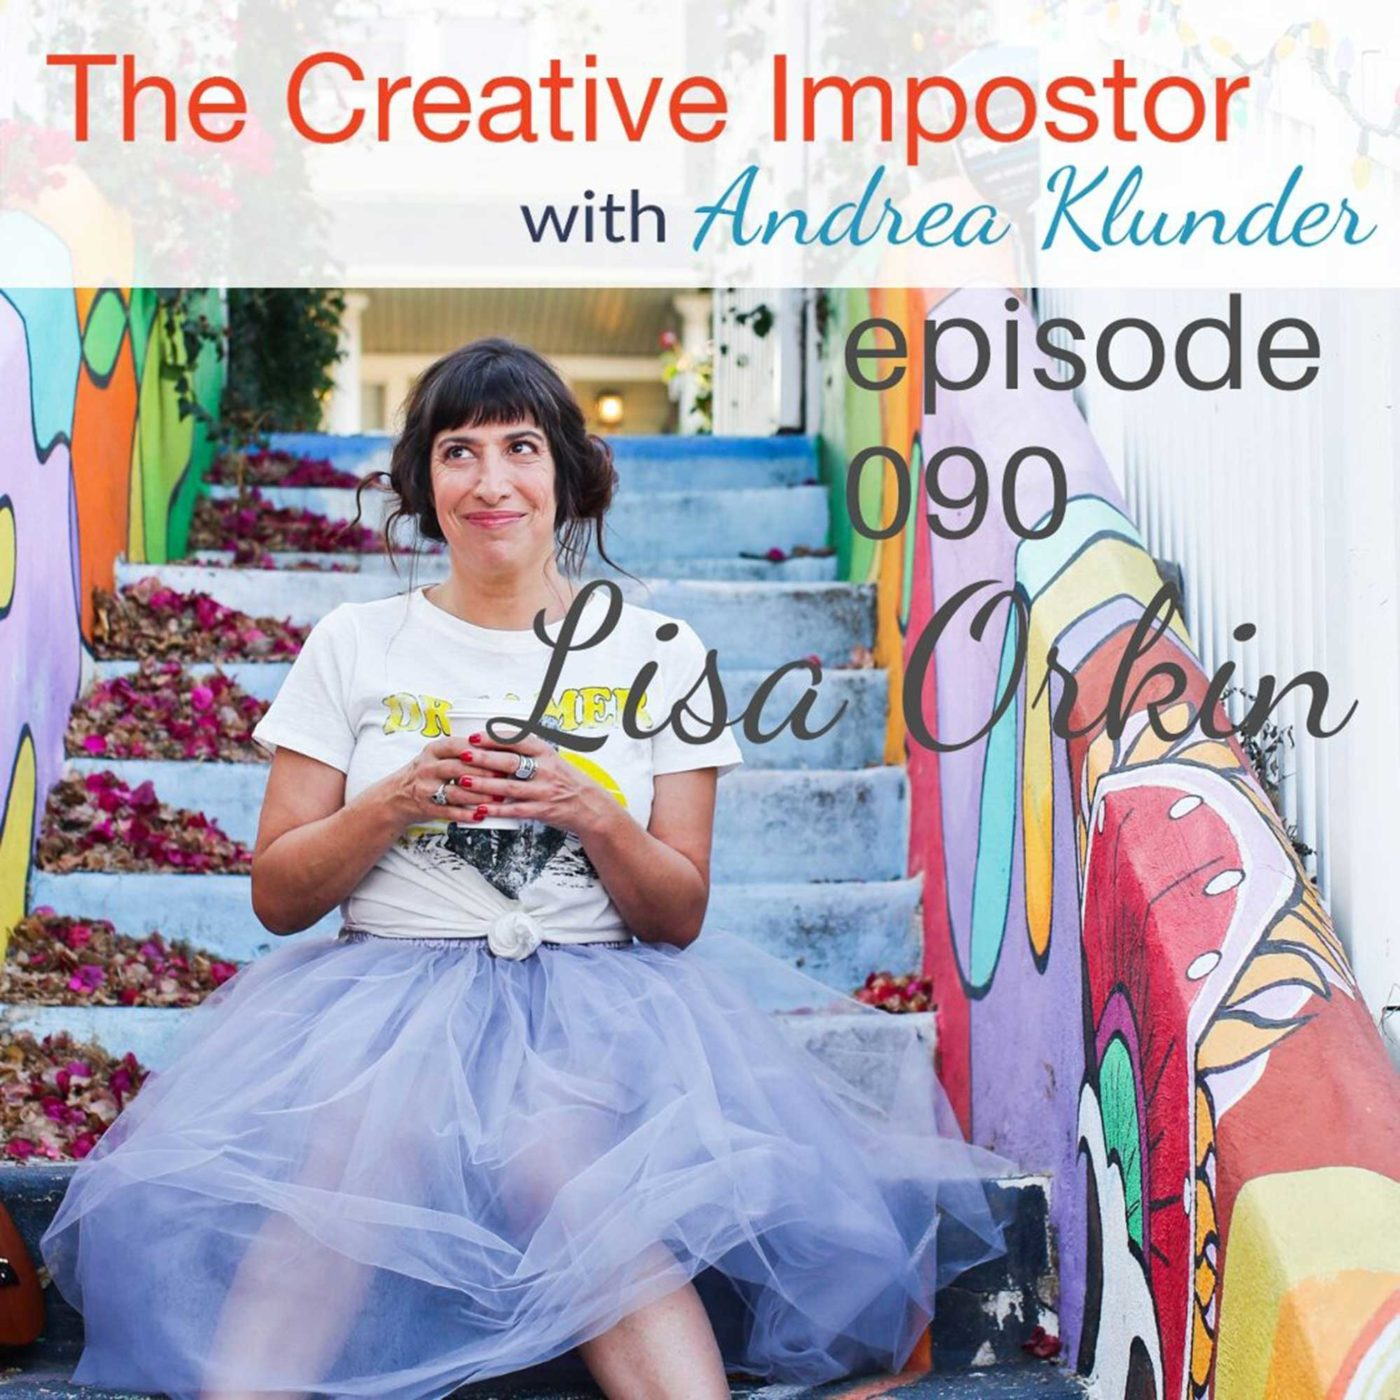 CI090: Learn how to use your voice (and have fun) with Lisa Orkin